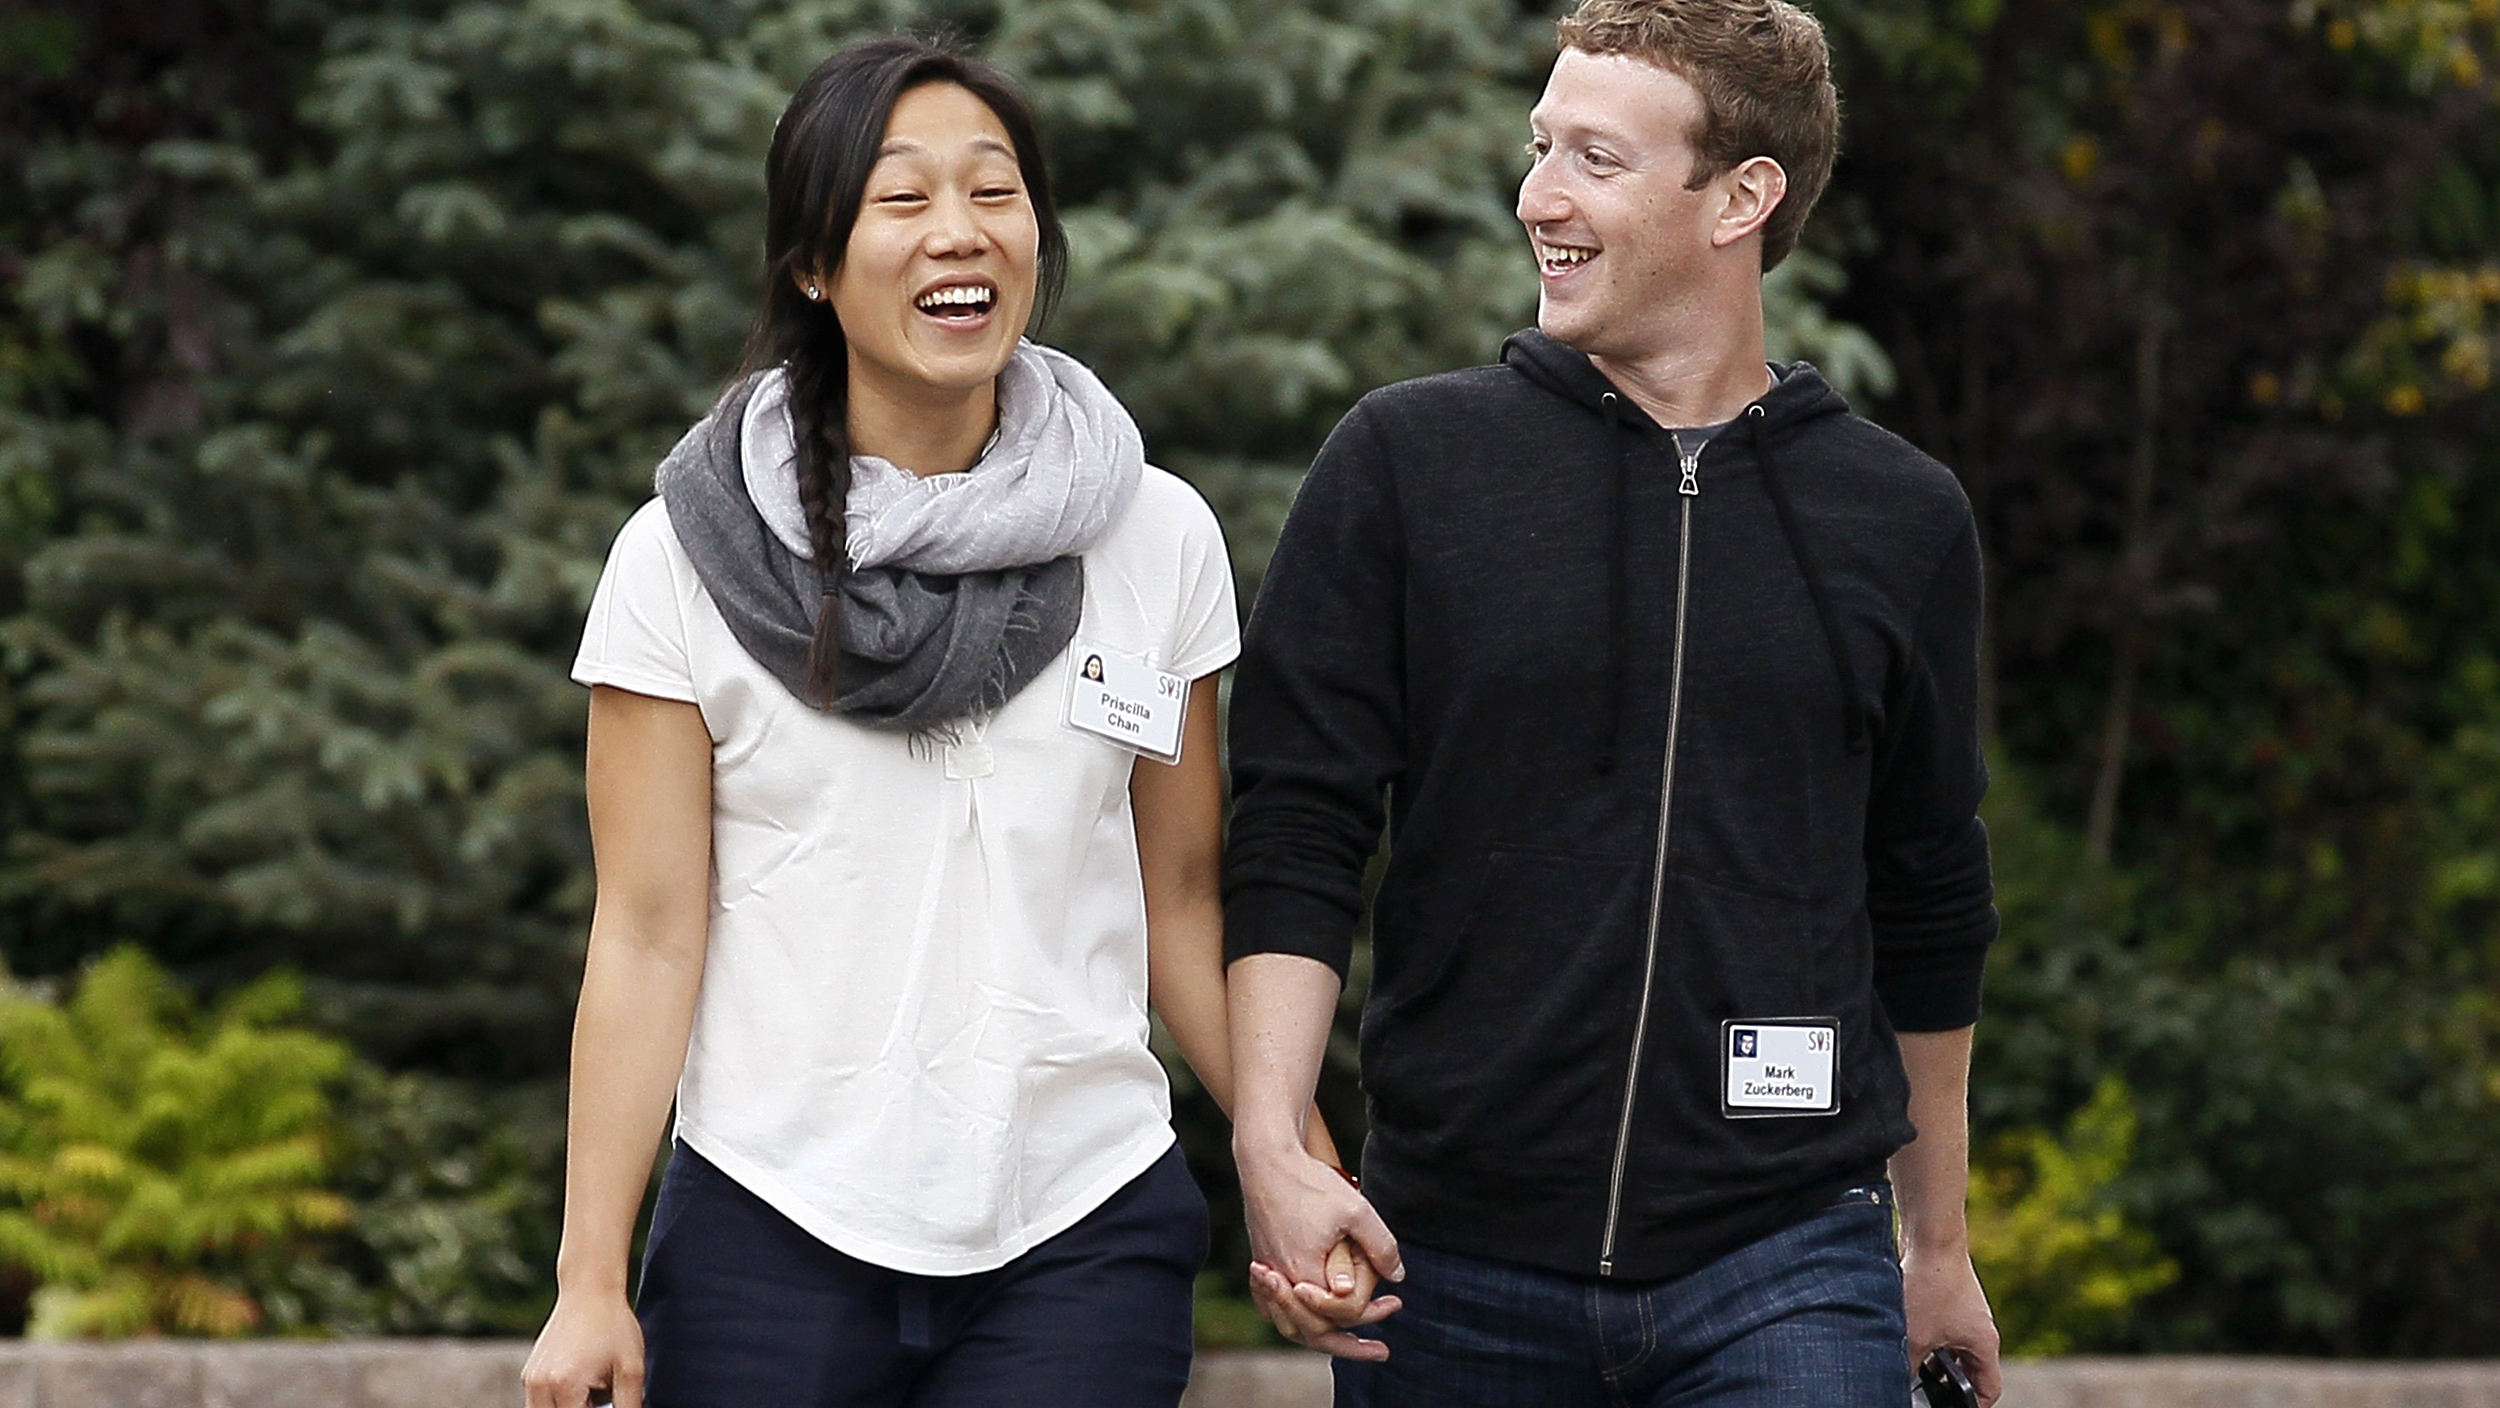 Facebook's Mark Zuckerberg, wife Priscilla Chan, donate $120